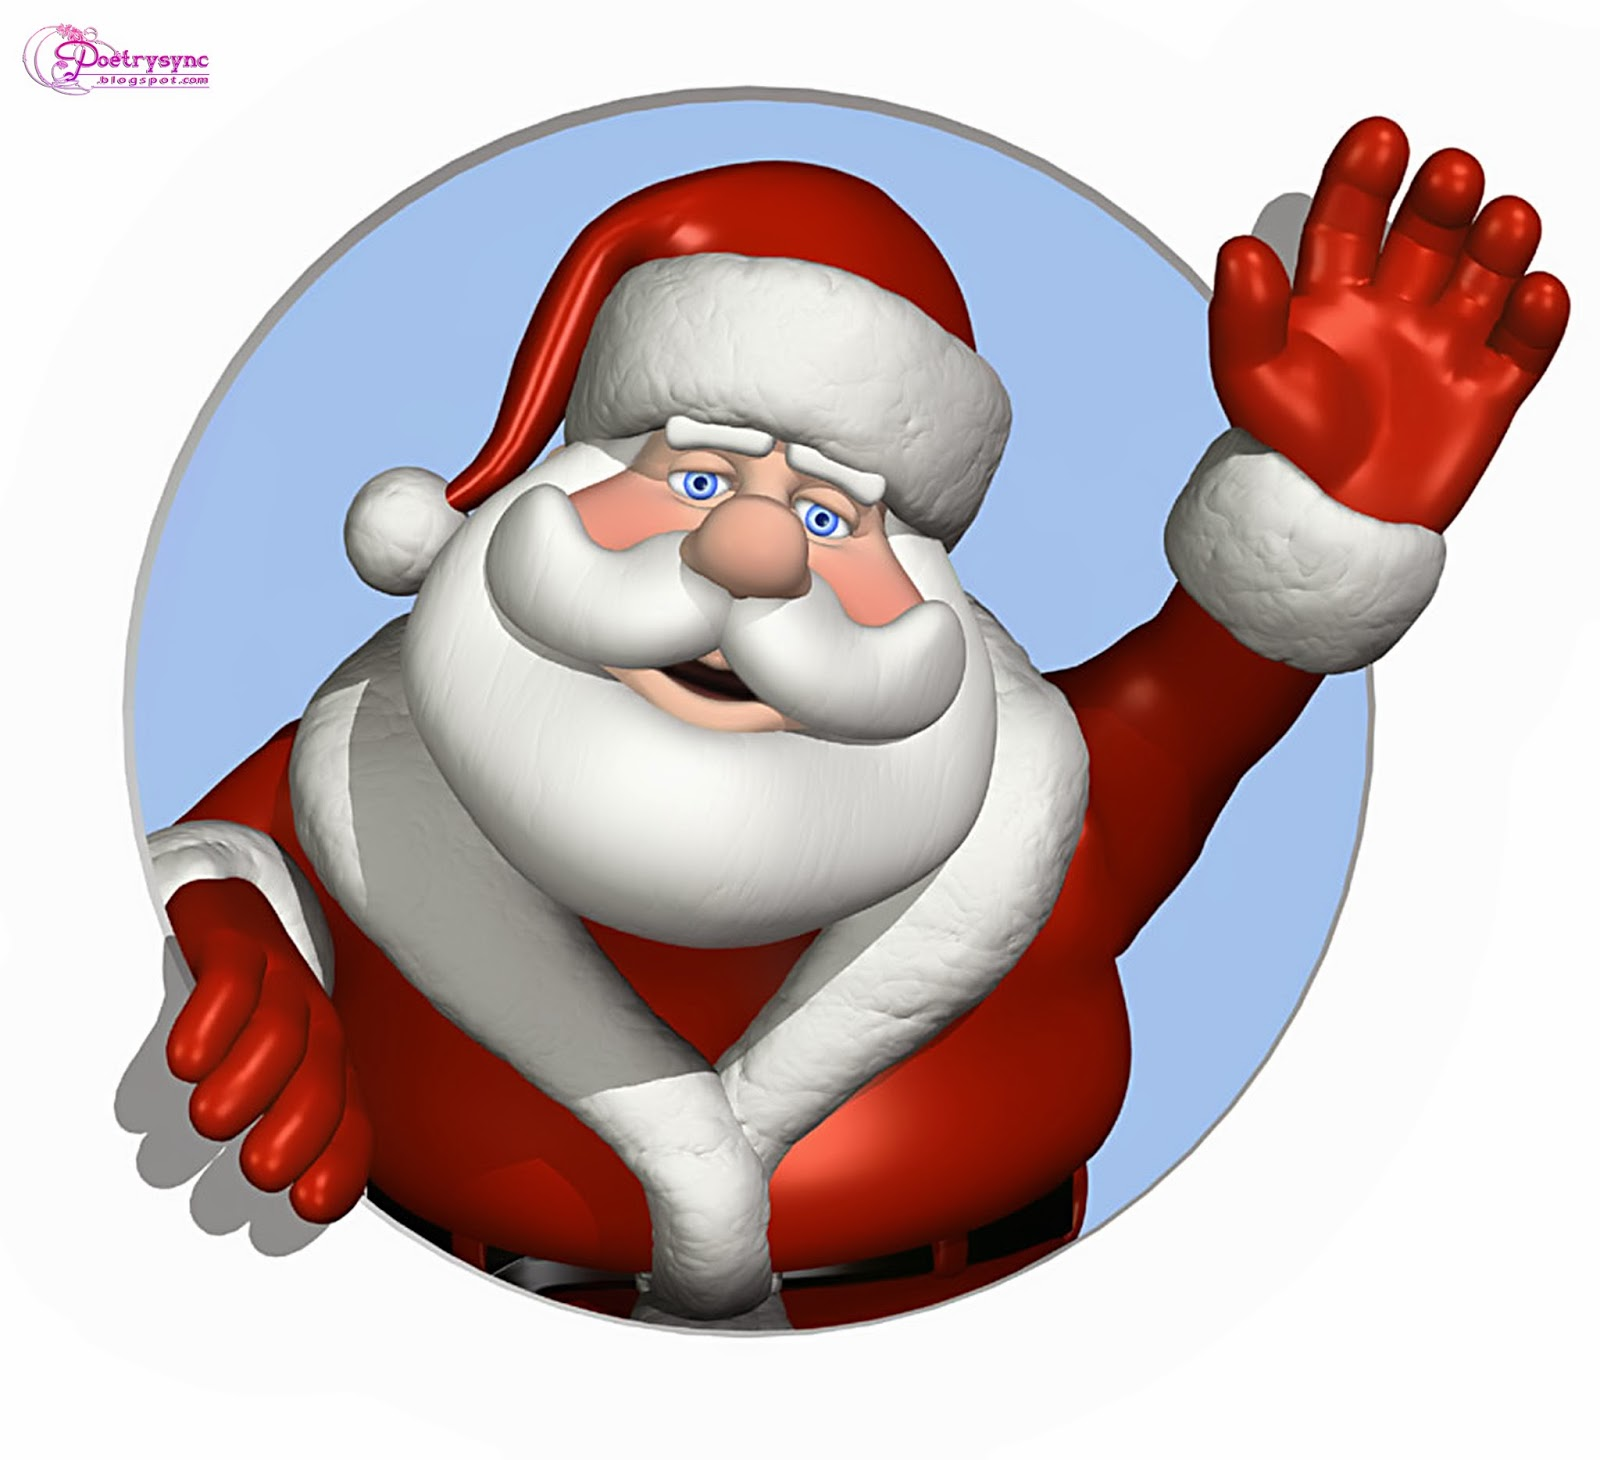 hight resolution of santa claus hd cliparts and pictures for christmas festival new